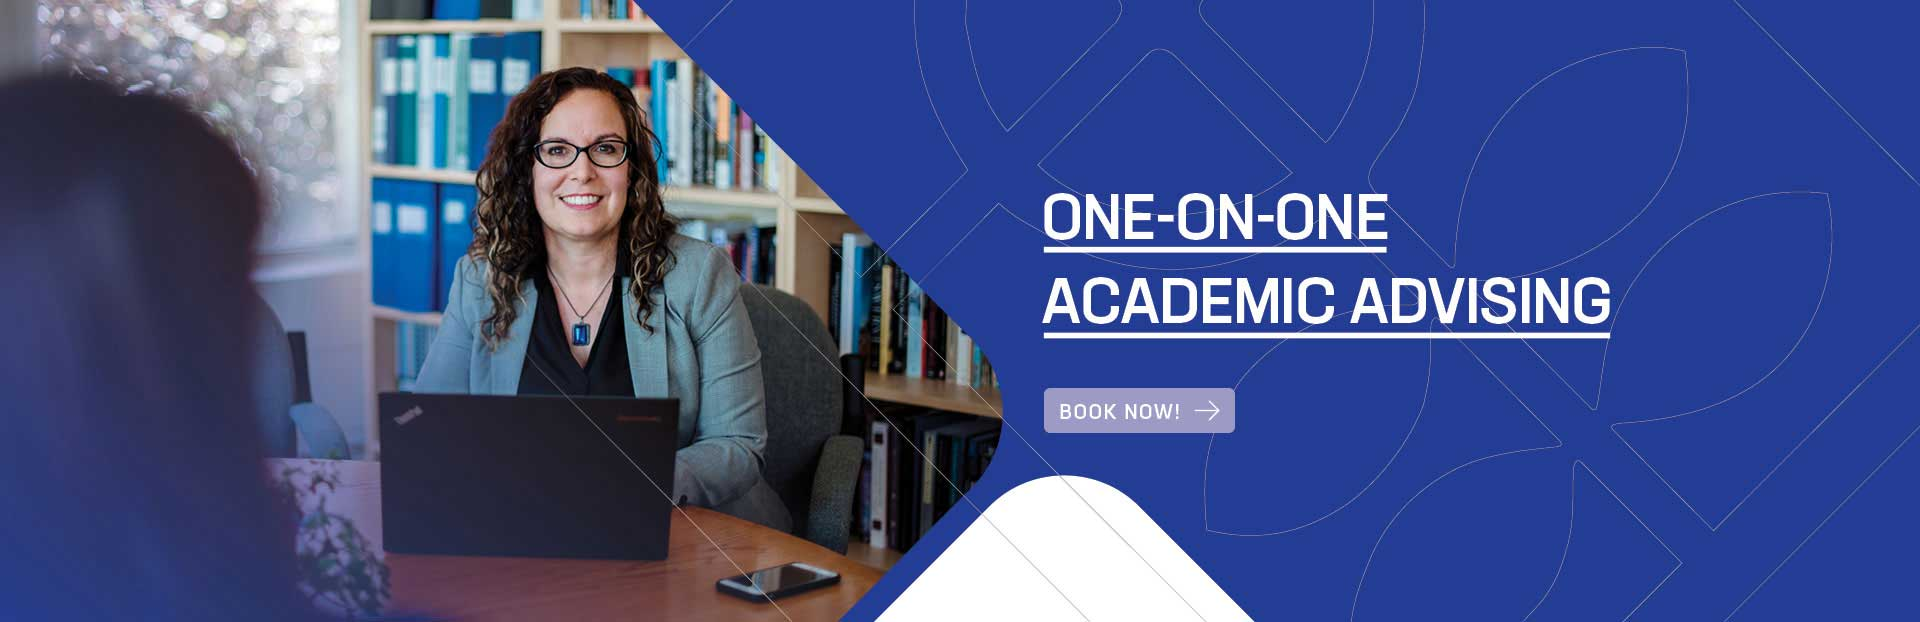 One-on-one academic advising at Luther College University